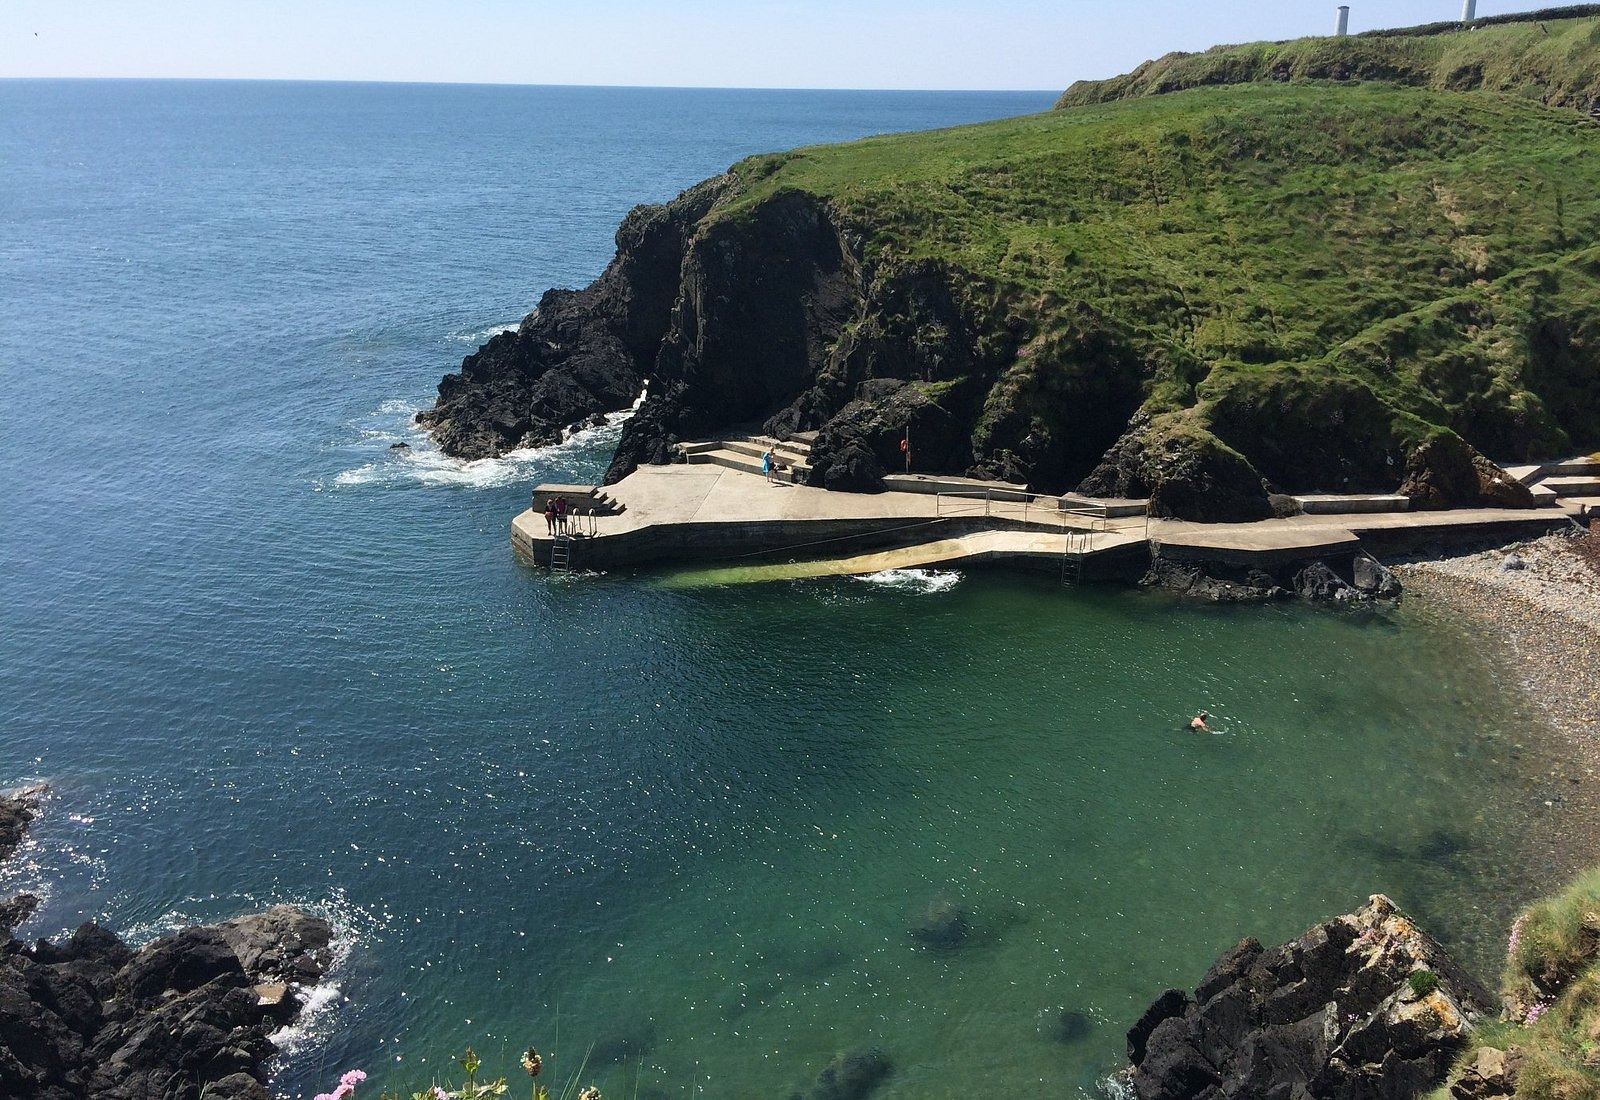 Newtown Cove, Tramore. One of the nicest spots for swimming you could ever come across